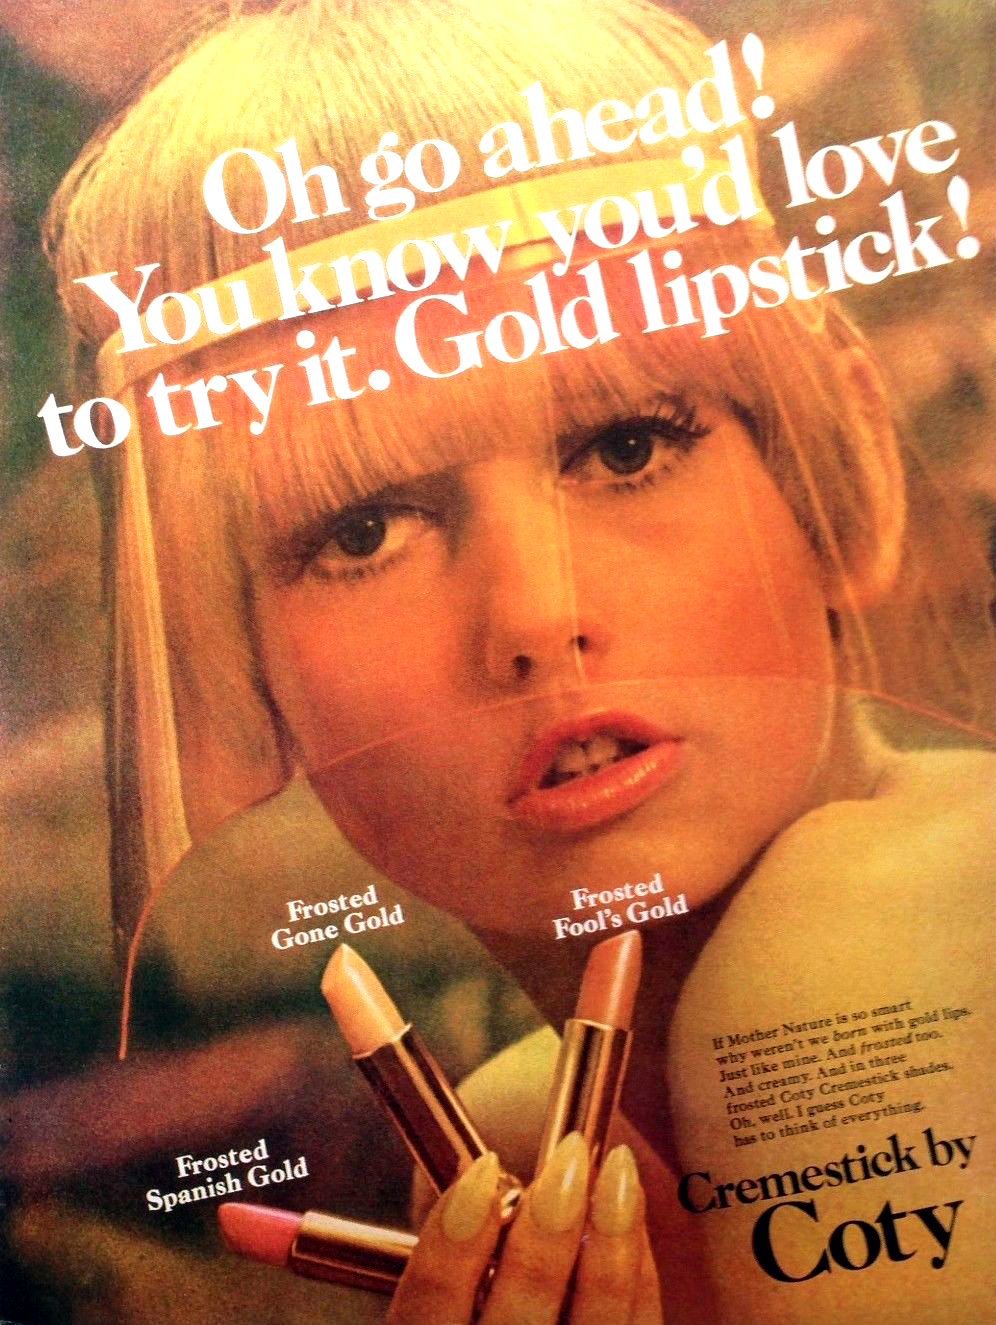 High Gloss And Hot Pink Lipstick Adverts From The 1960s